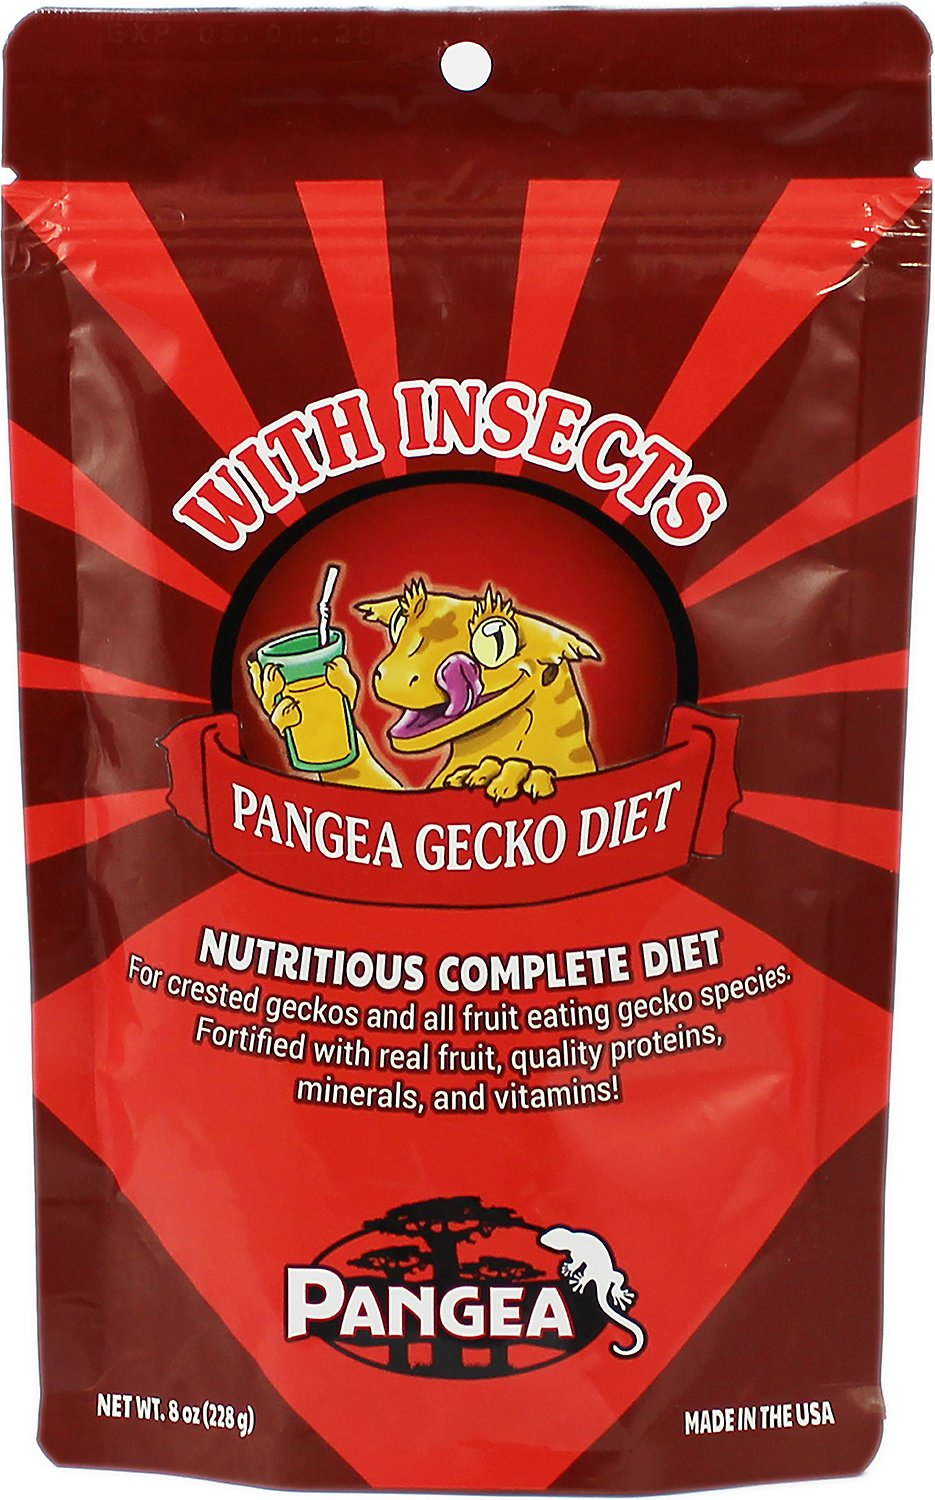 pangea food  Pangea Fruit Mix Gecko Diet with Insects Food, 2-oz bag -